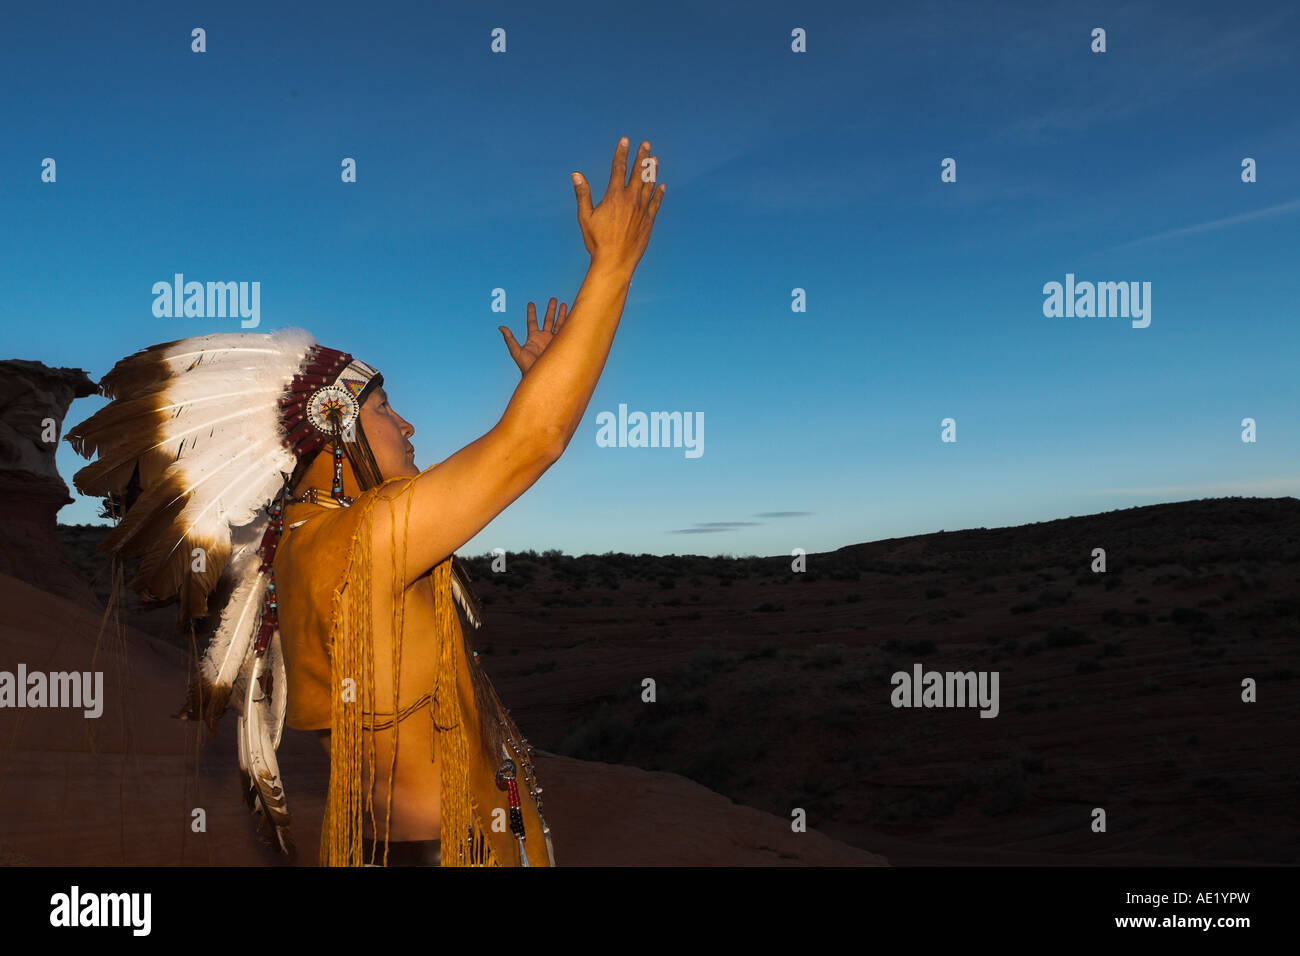 Native American Indian man with cultural outfit uniform headdress feathers design patterns leather band nature sunset - Stock Image